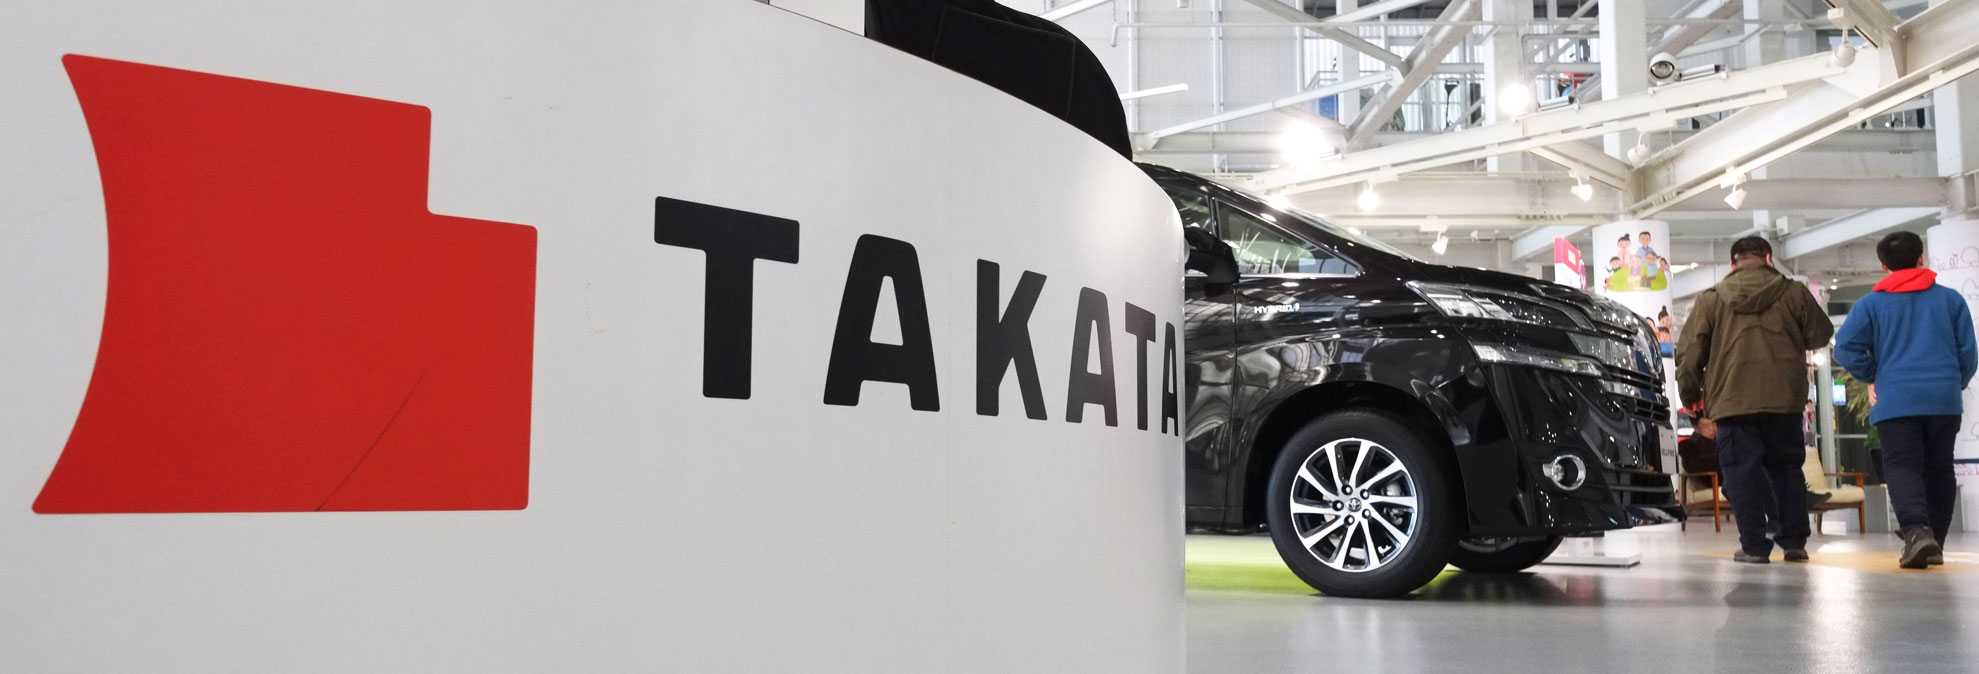 Auto Airbag Settlement >> Takata Airbag Court Ruling Consumer Reports